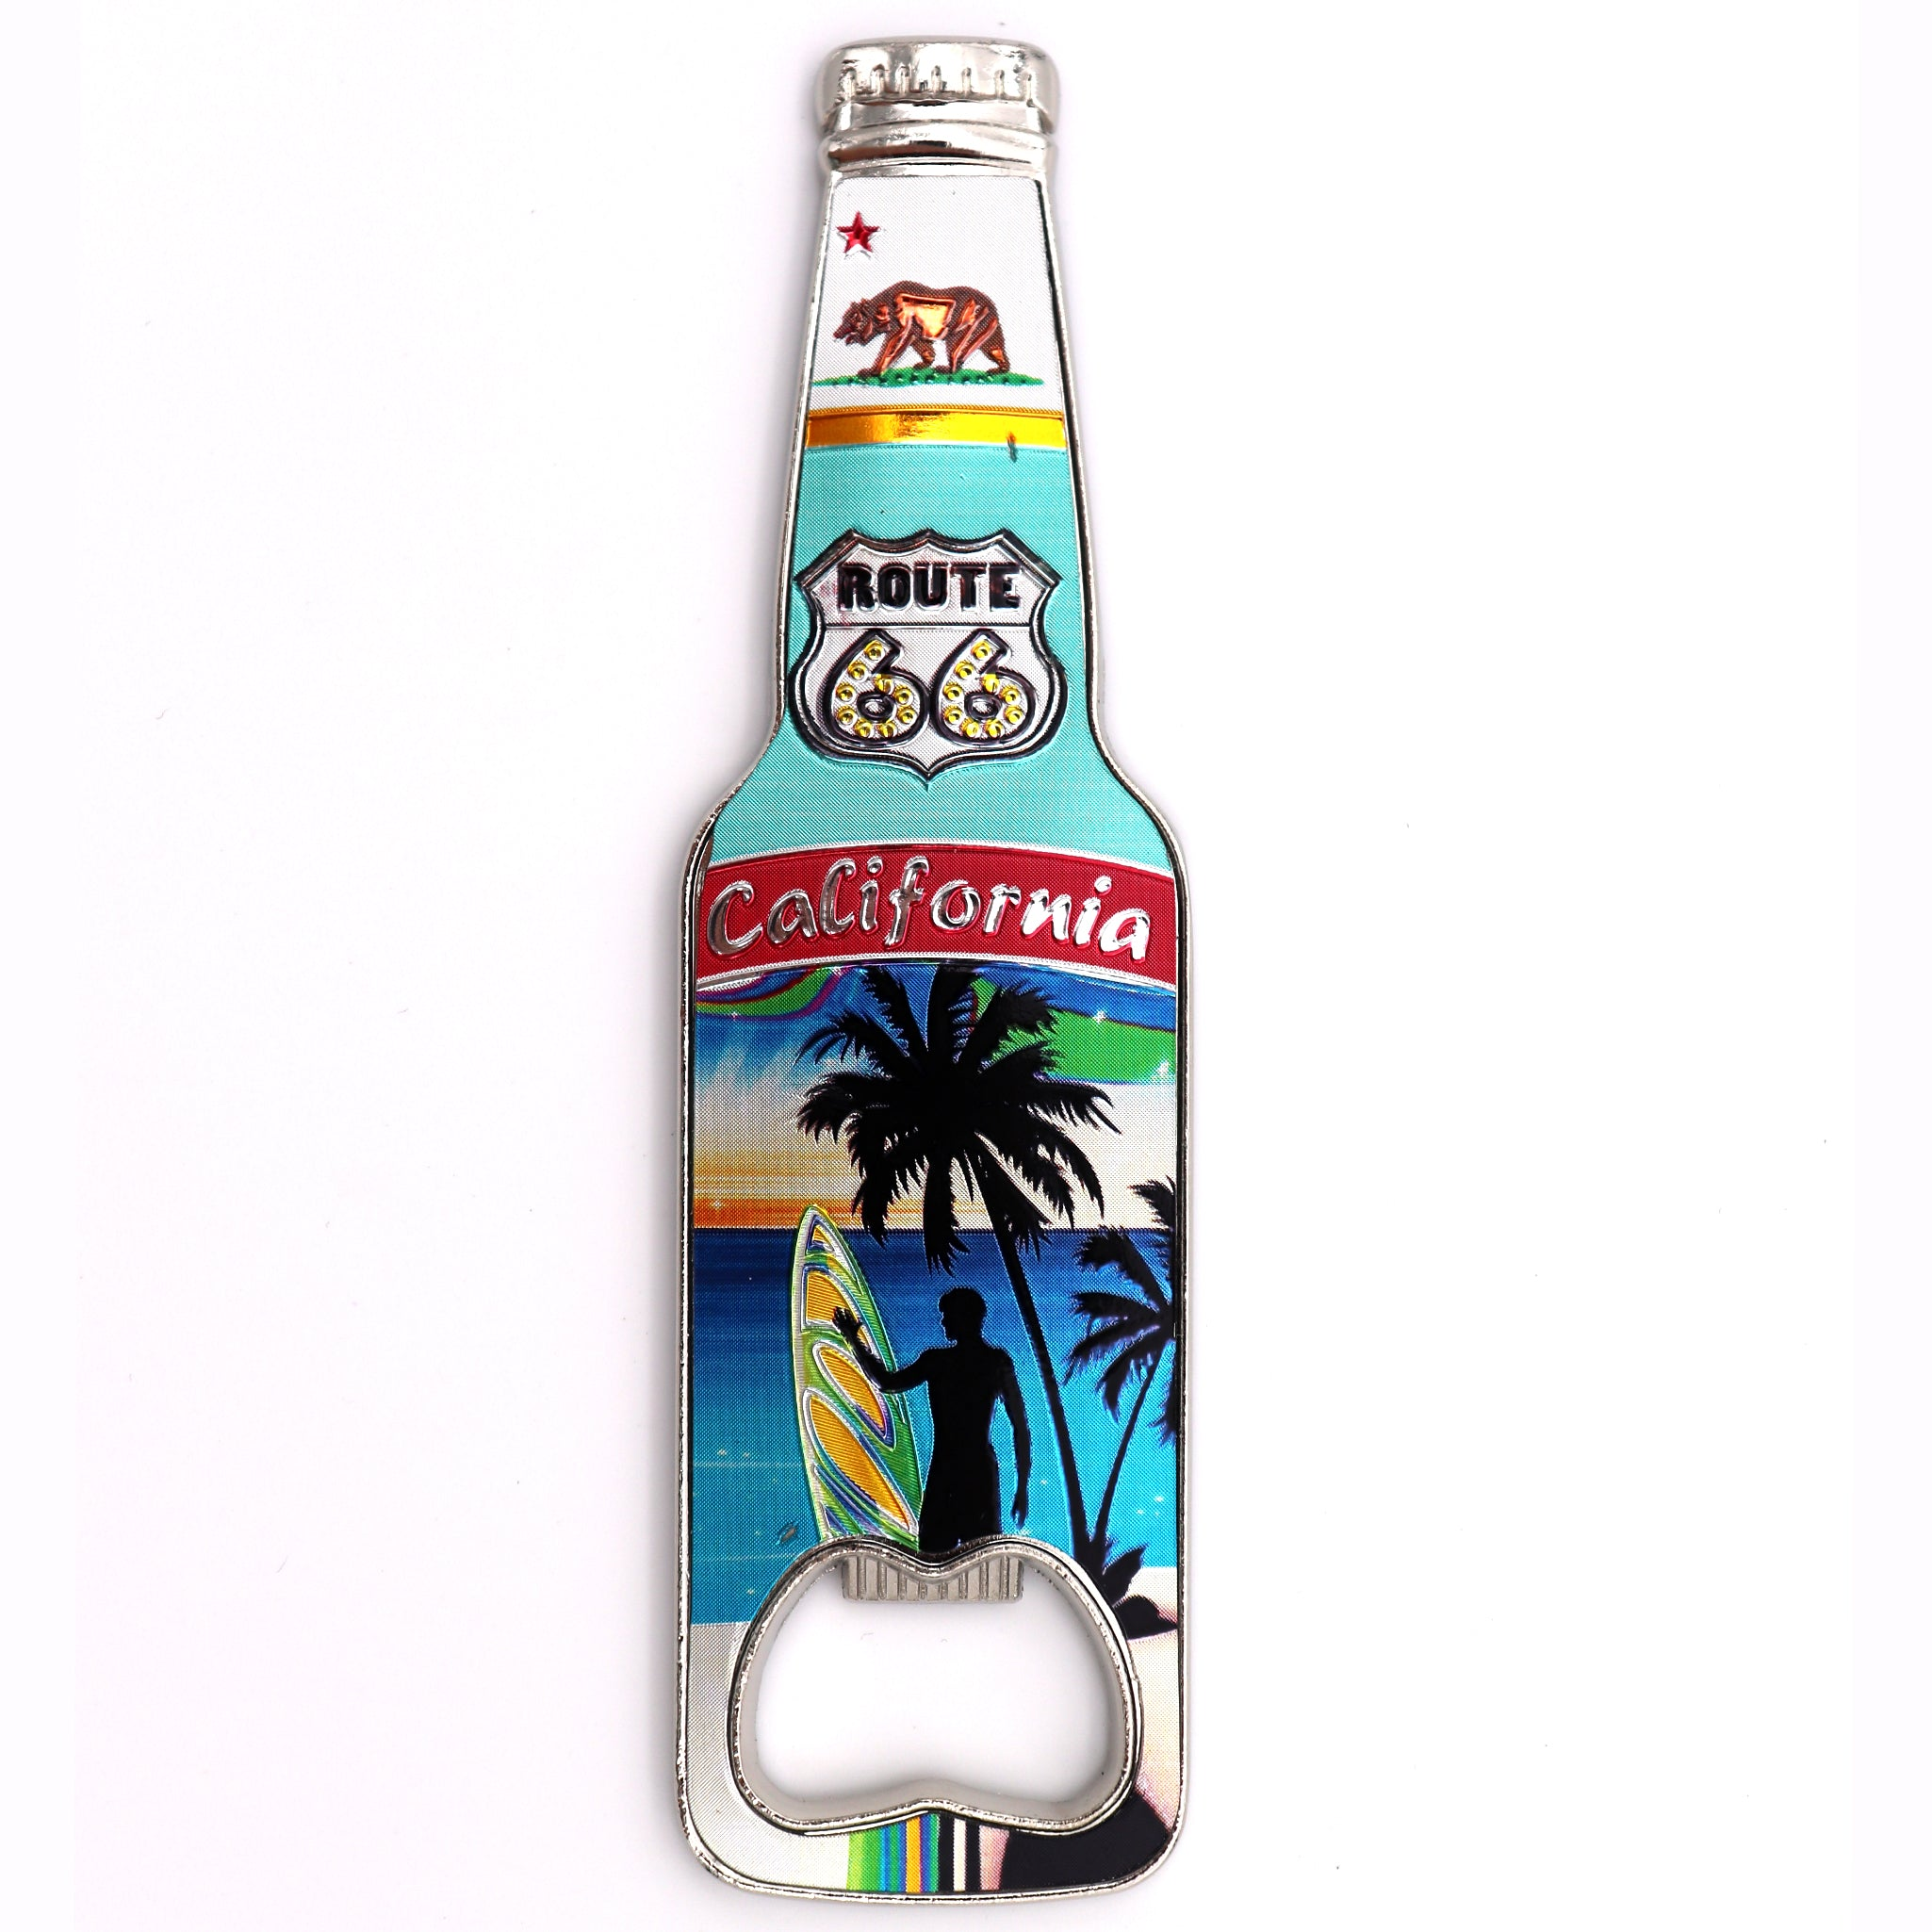 California Bottle opener magnet featuring the ca flag bear and route 66 traffic sign with a view of the beach and a surfers sihlouette